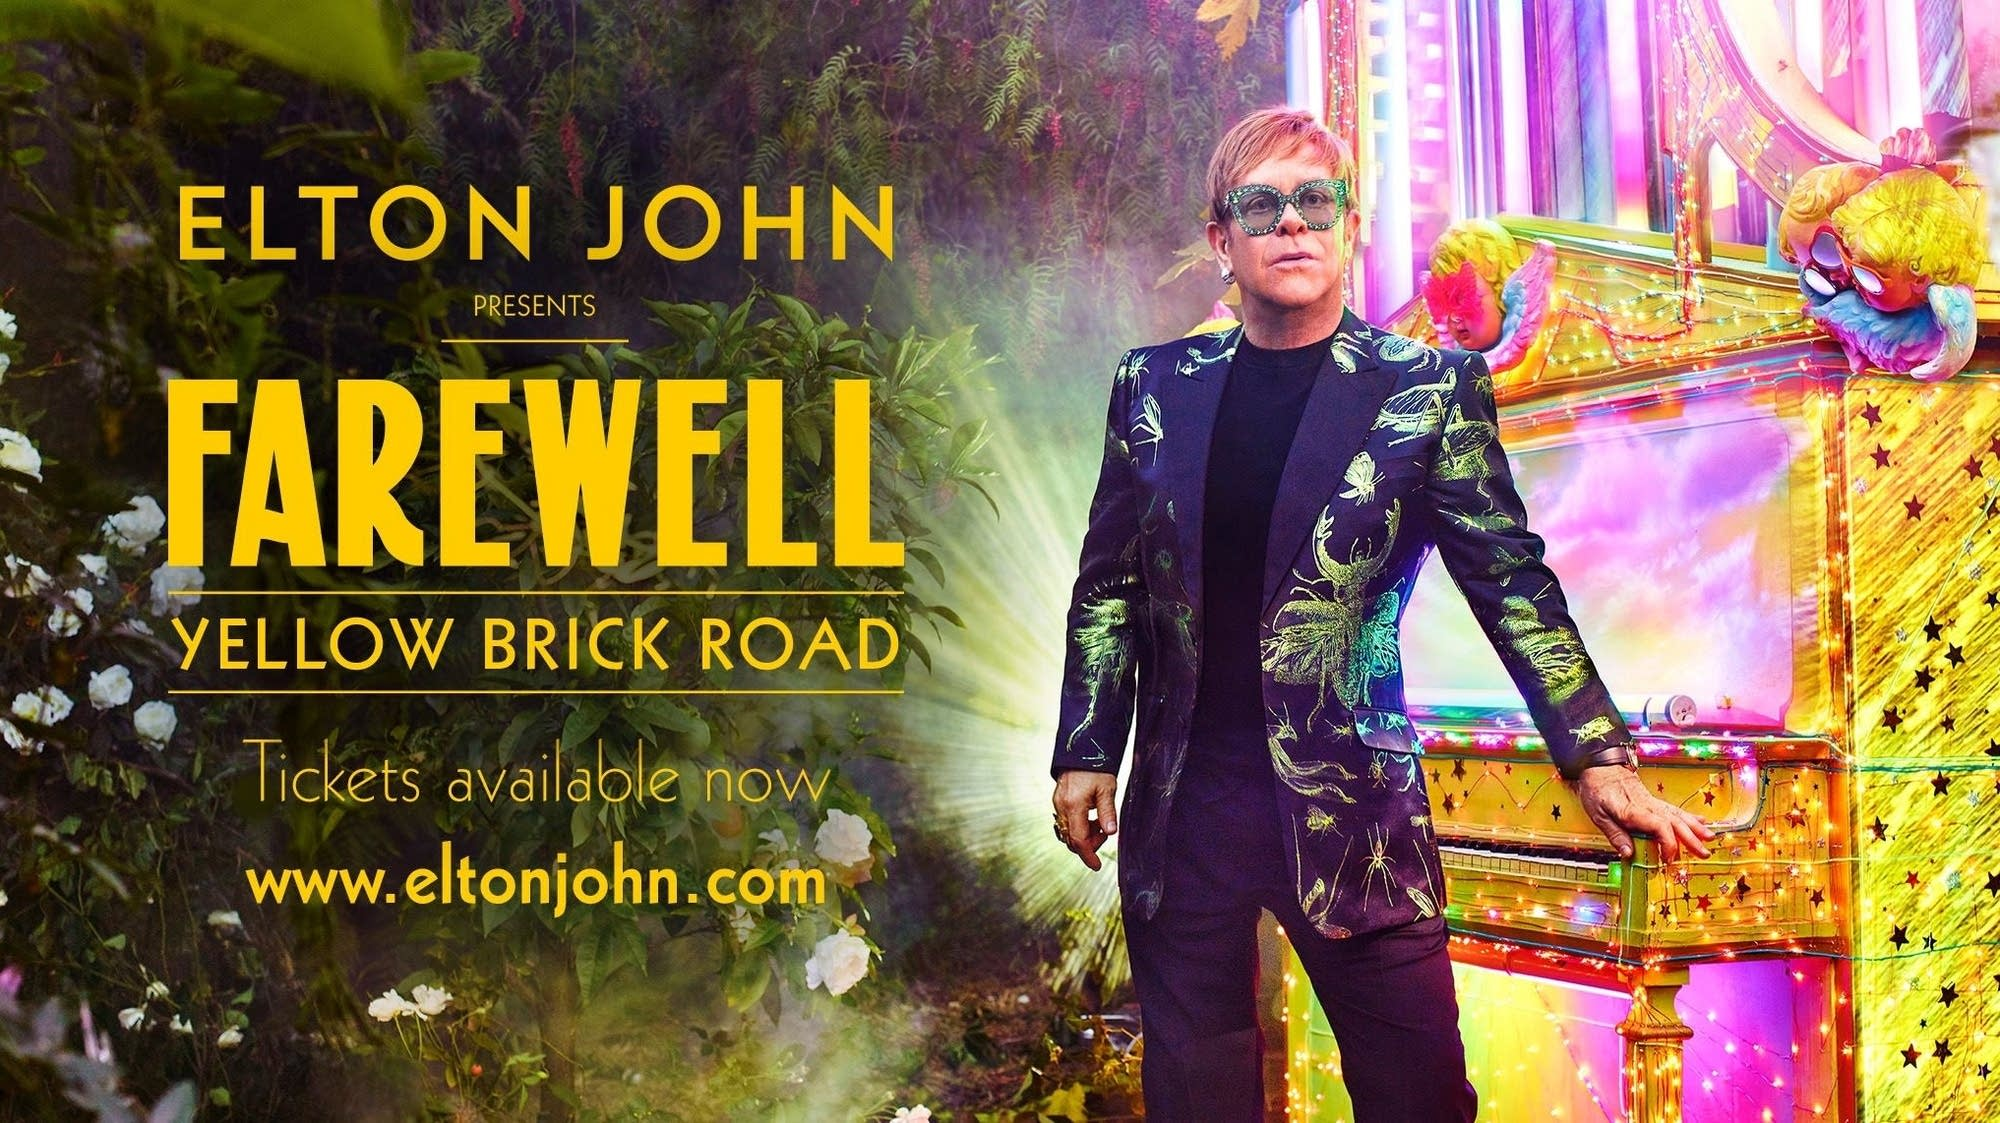 Elton John - Farewell Yellow Brick Road Tour